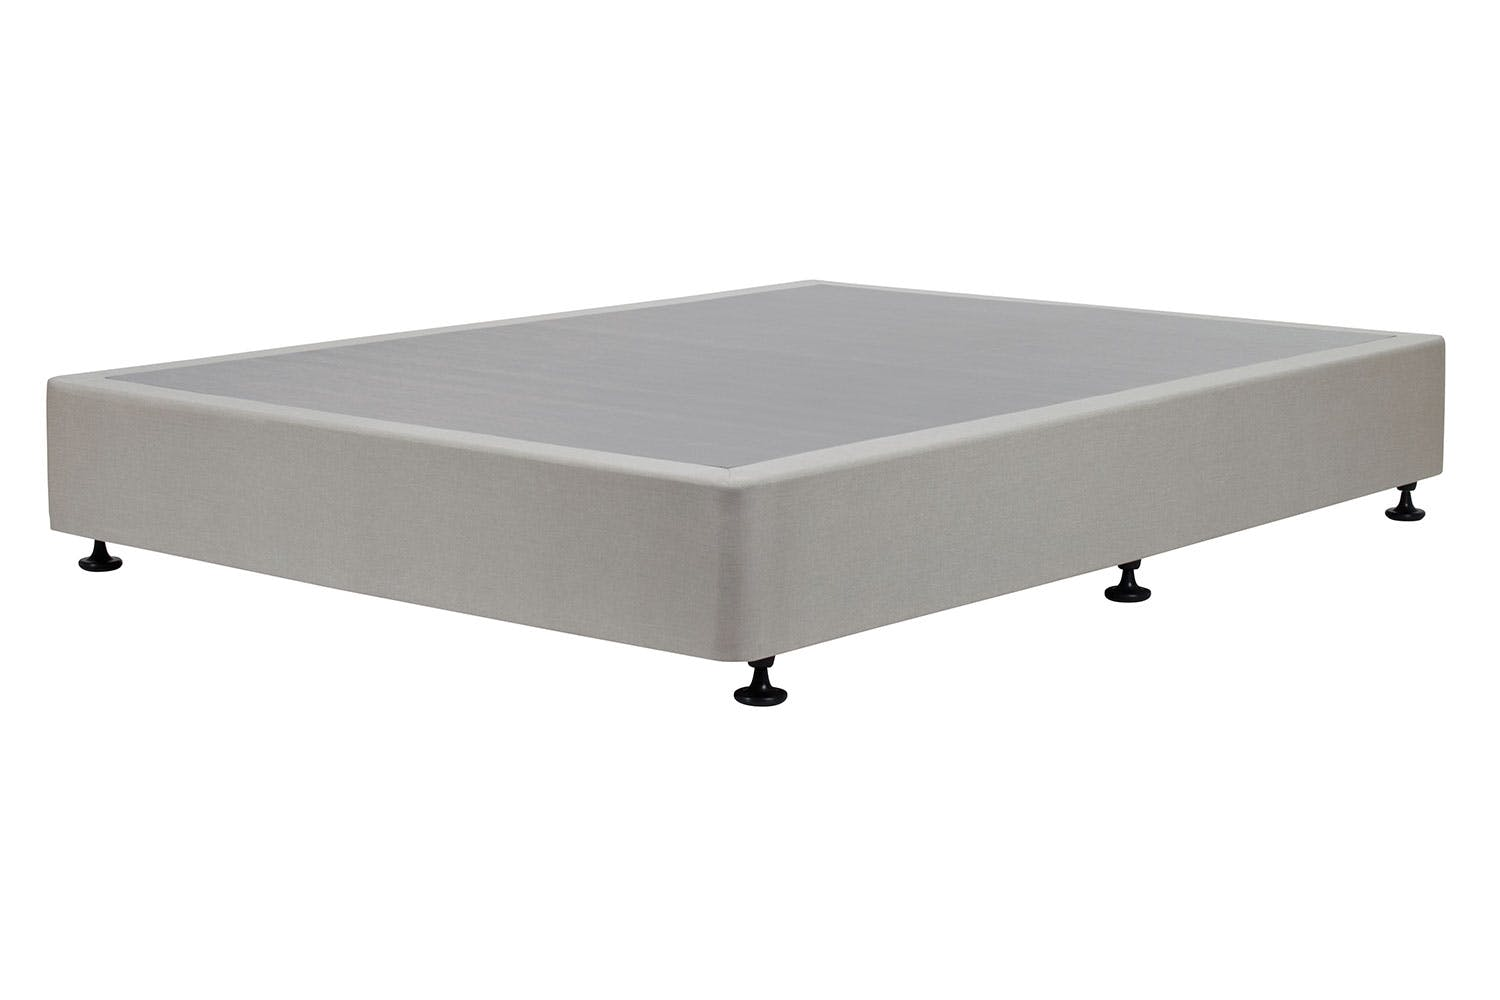 Trendtek Plain Queen Bed Base by Sleep Systems | Harvey ...